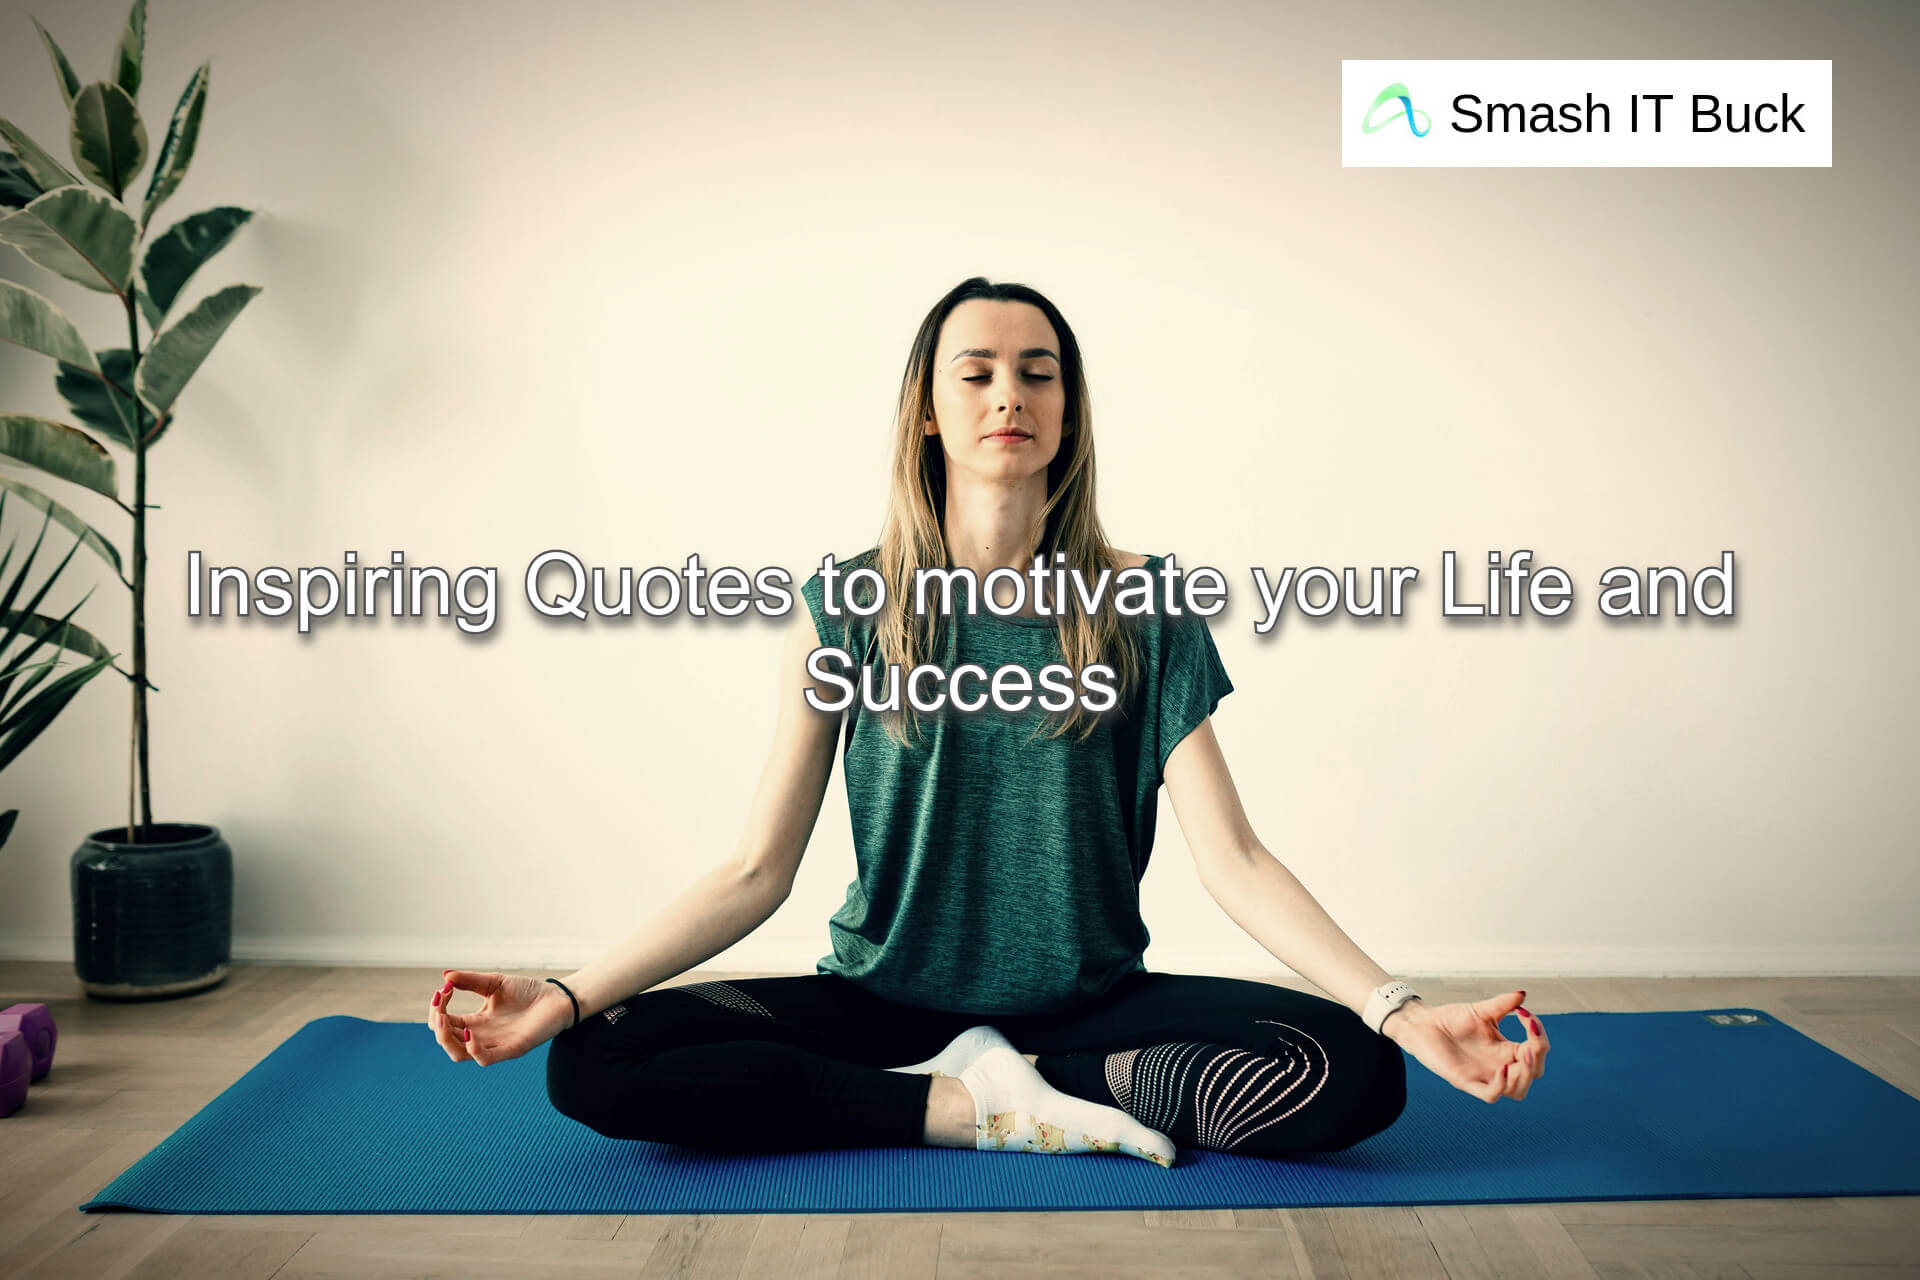 100+ Inspirational Quotes to Motivate Your Life and Success